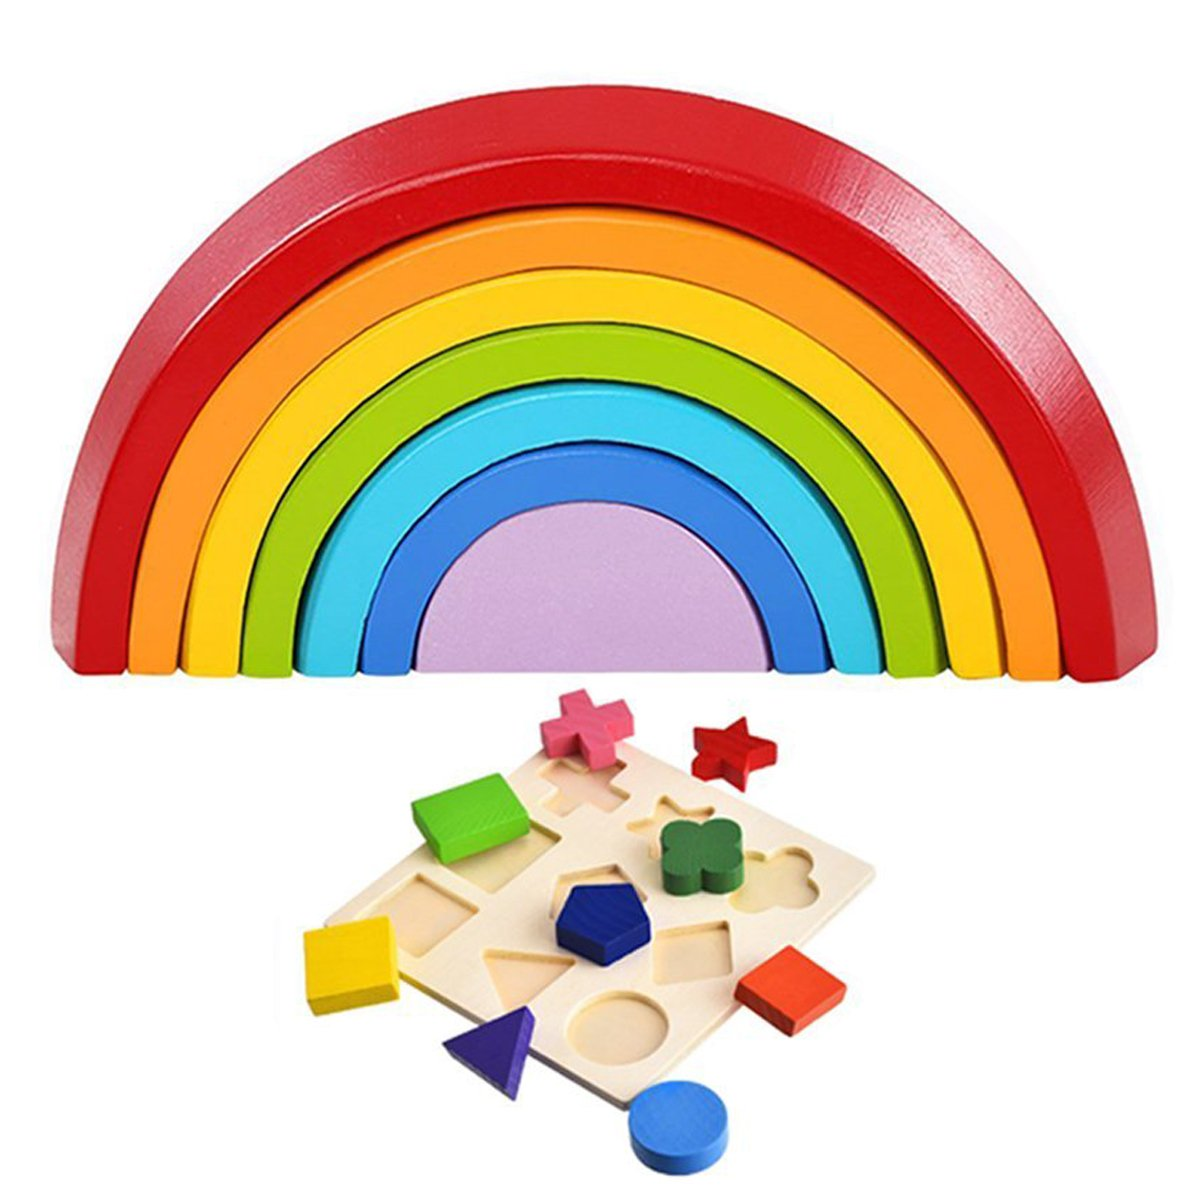 LiteBee Wooden Stacking Game Stacker Set (Rainbow Stacker + Shape Puzzle) Early Learning Toys, Geometry Building Nesting Blocks Puzzles Early Development Educational Toys for Kid Baby Toddler Infant